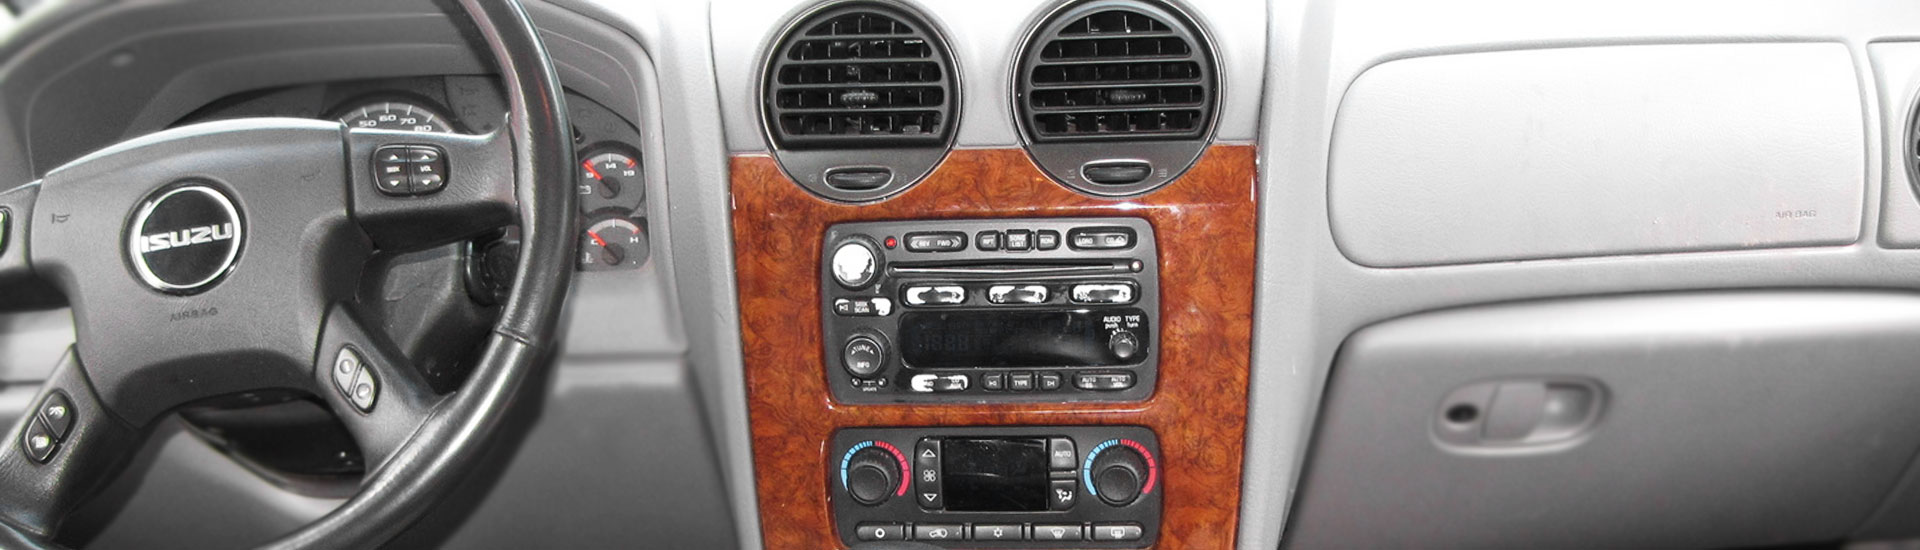 1999 Isuzu VehiCROSS Custom Dash Kits